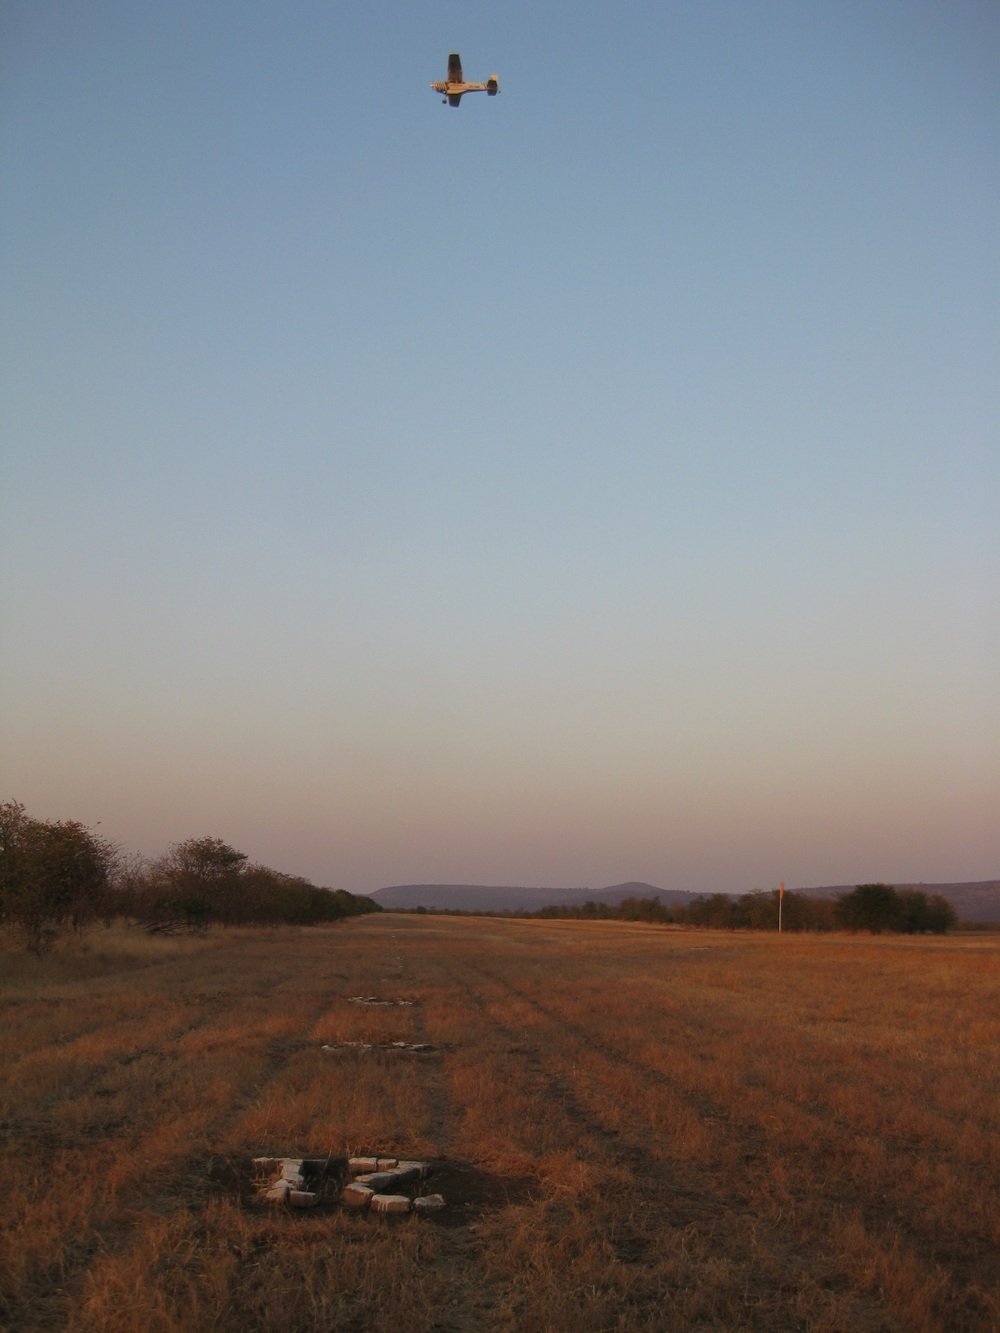 A calibration run at 300 feet above ground level across the airstrip by the survey aircraft. Repeated runs are made to complete the calibration. Chipinda Pools, August 2014.